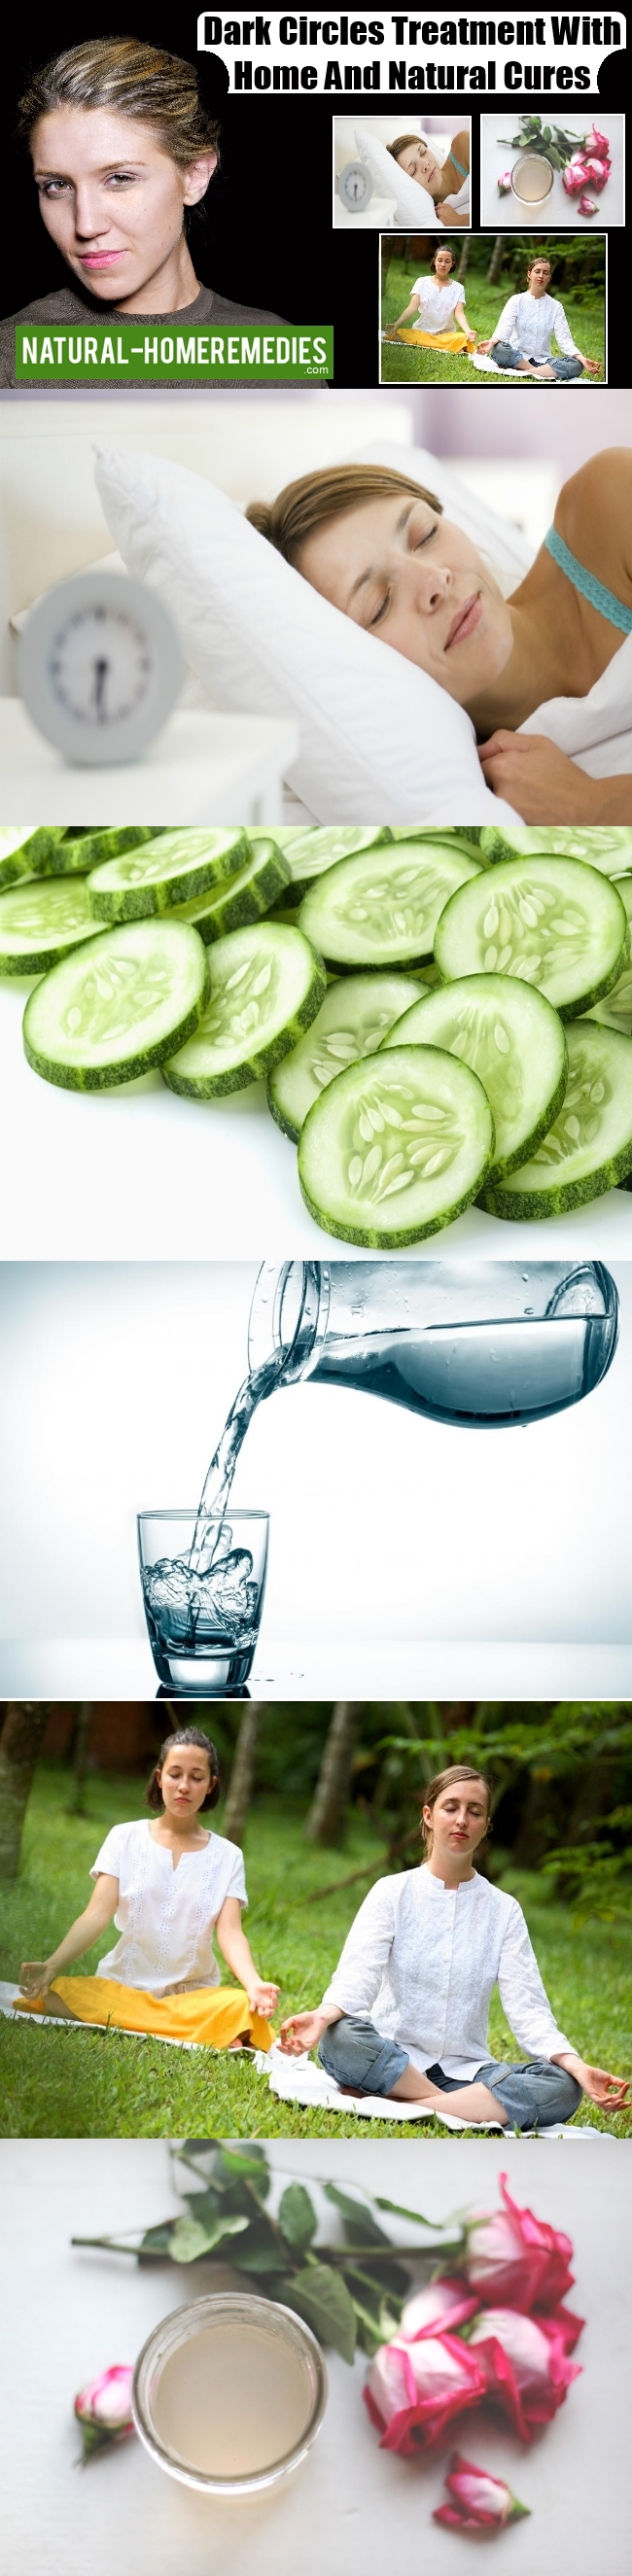 Dark Circles Treatment With Home And Natural Cures